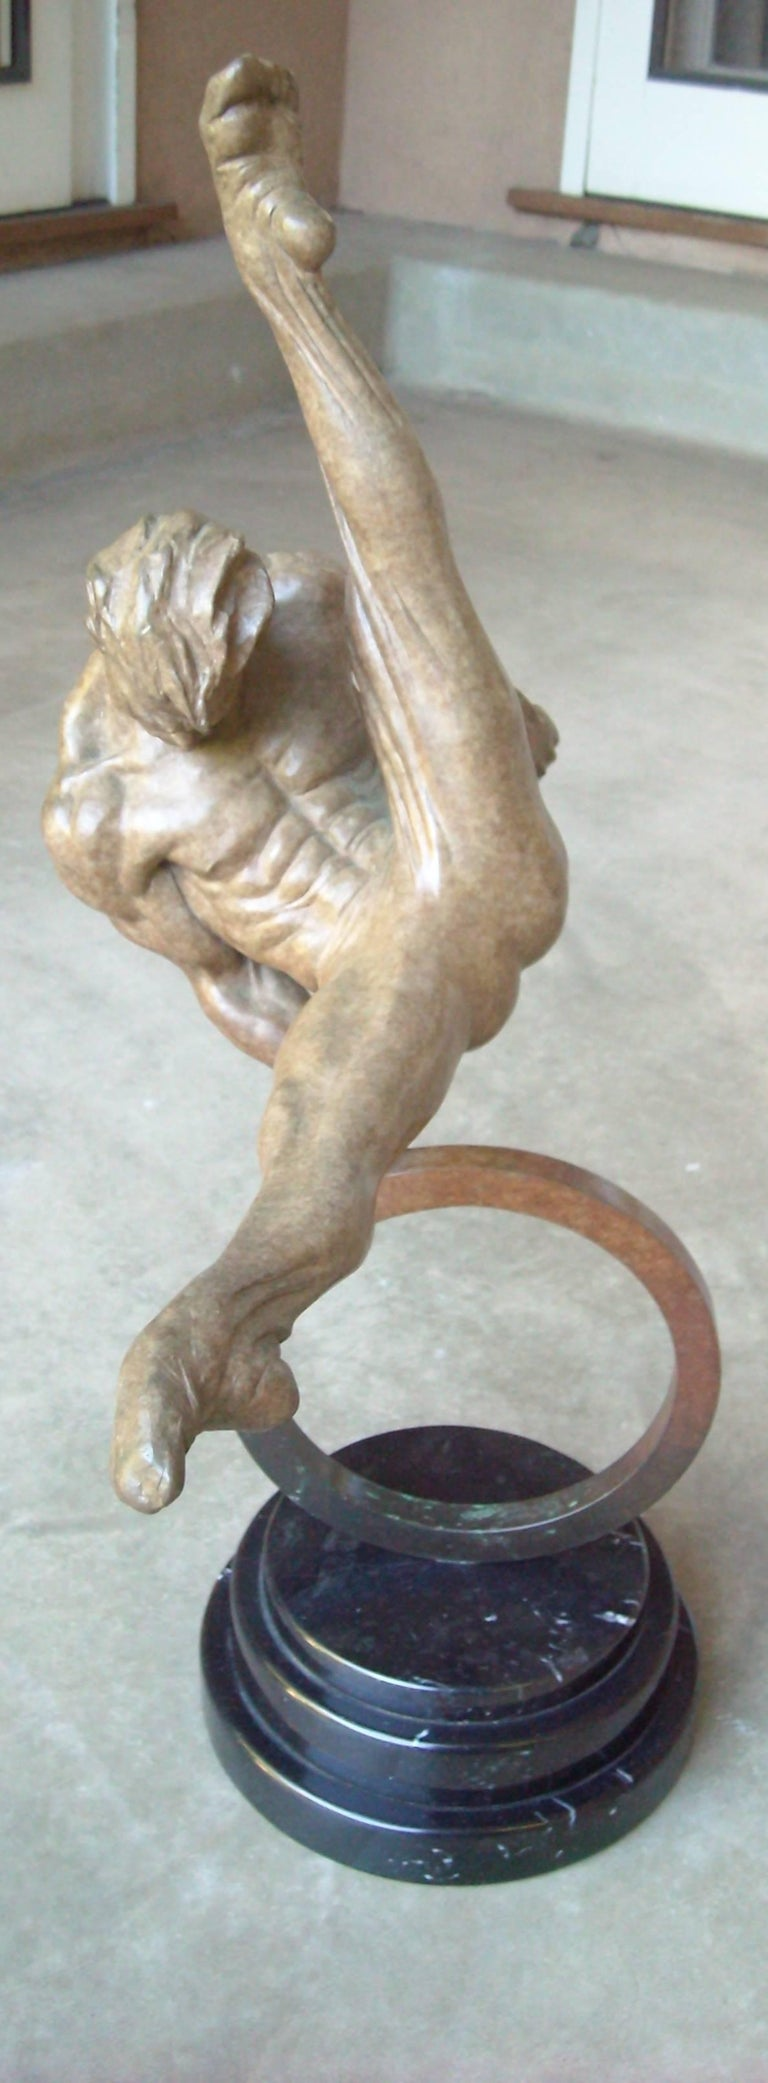 Richard MacDonald Athlete Bronze, Signed, Dated, Numbered 113/250 In Excellent Condition For Sale In Los Angeles, CA